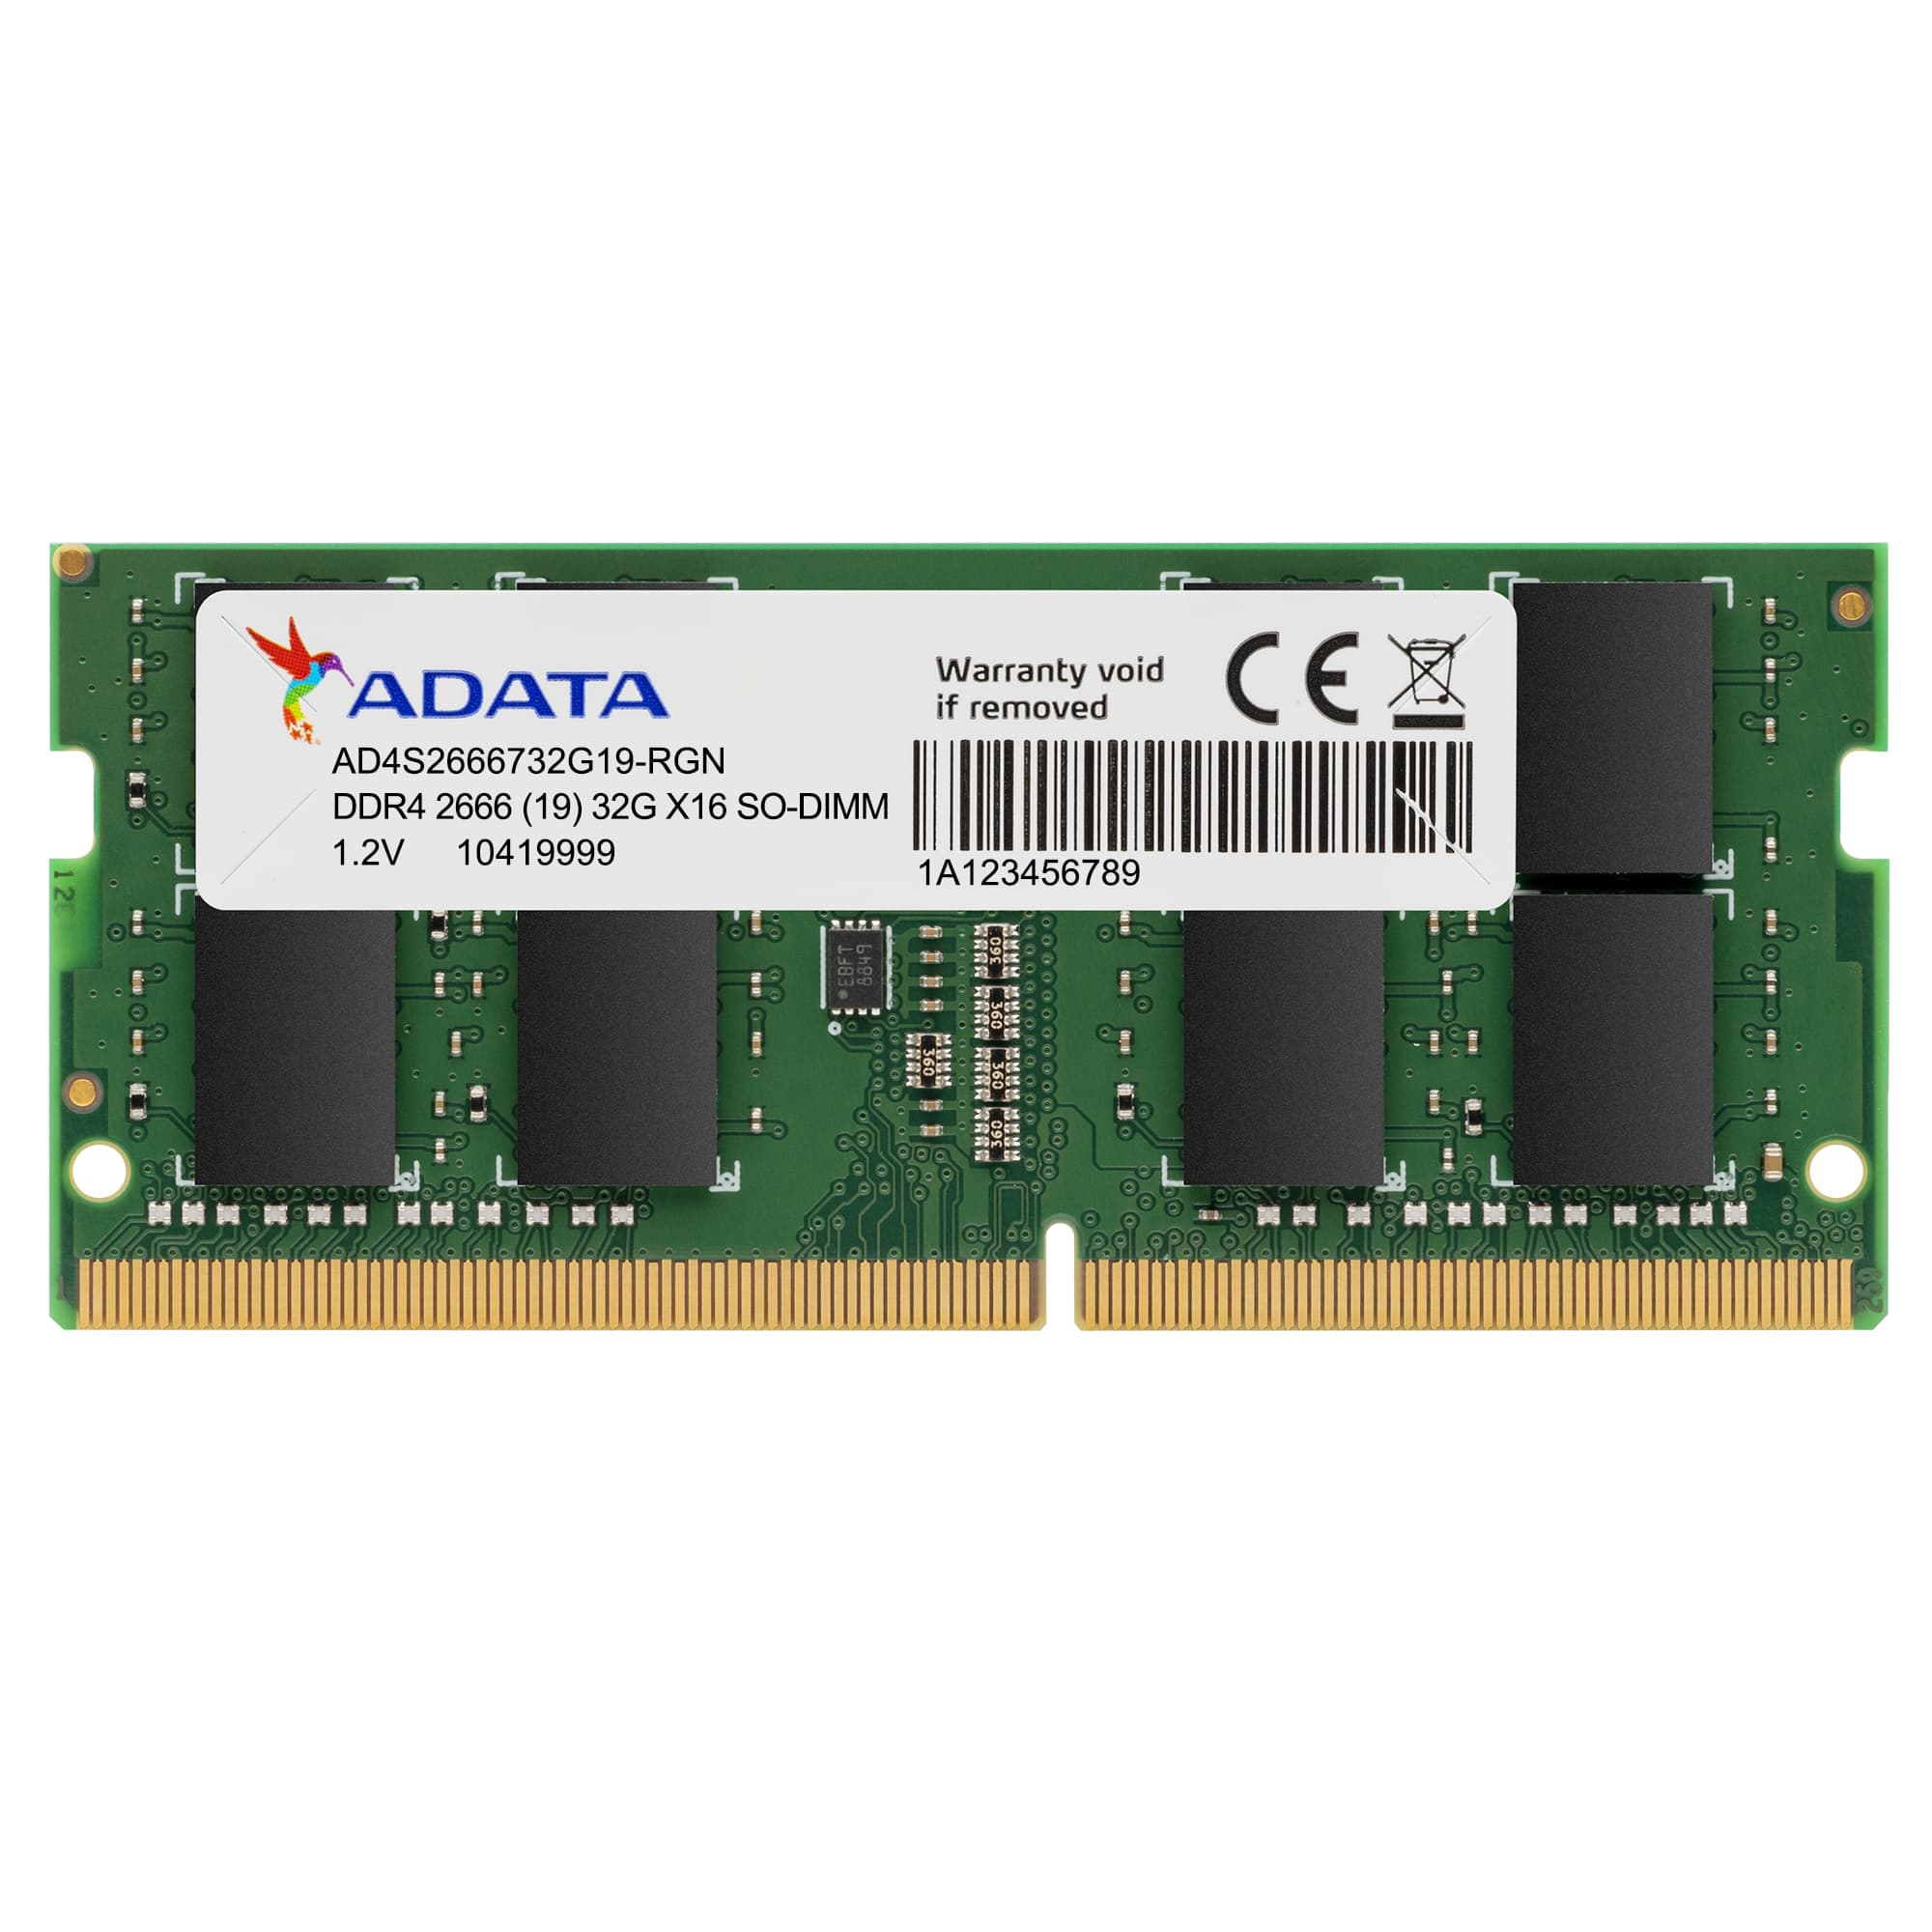 ADATA 32GB DDR4 2666MHz SO-DIMM Laptop RAM